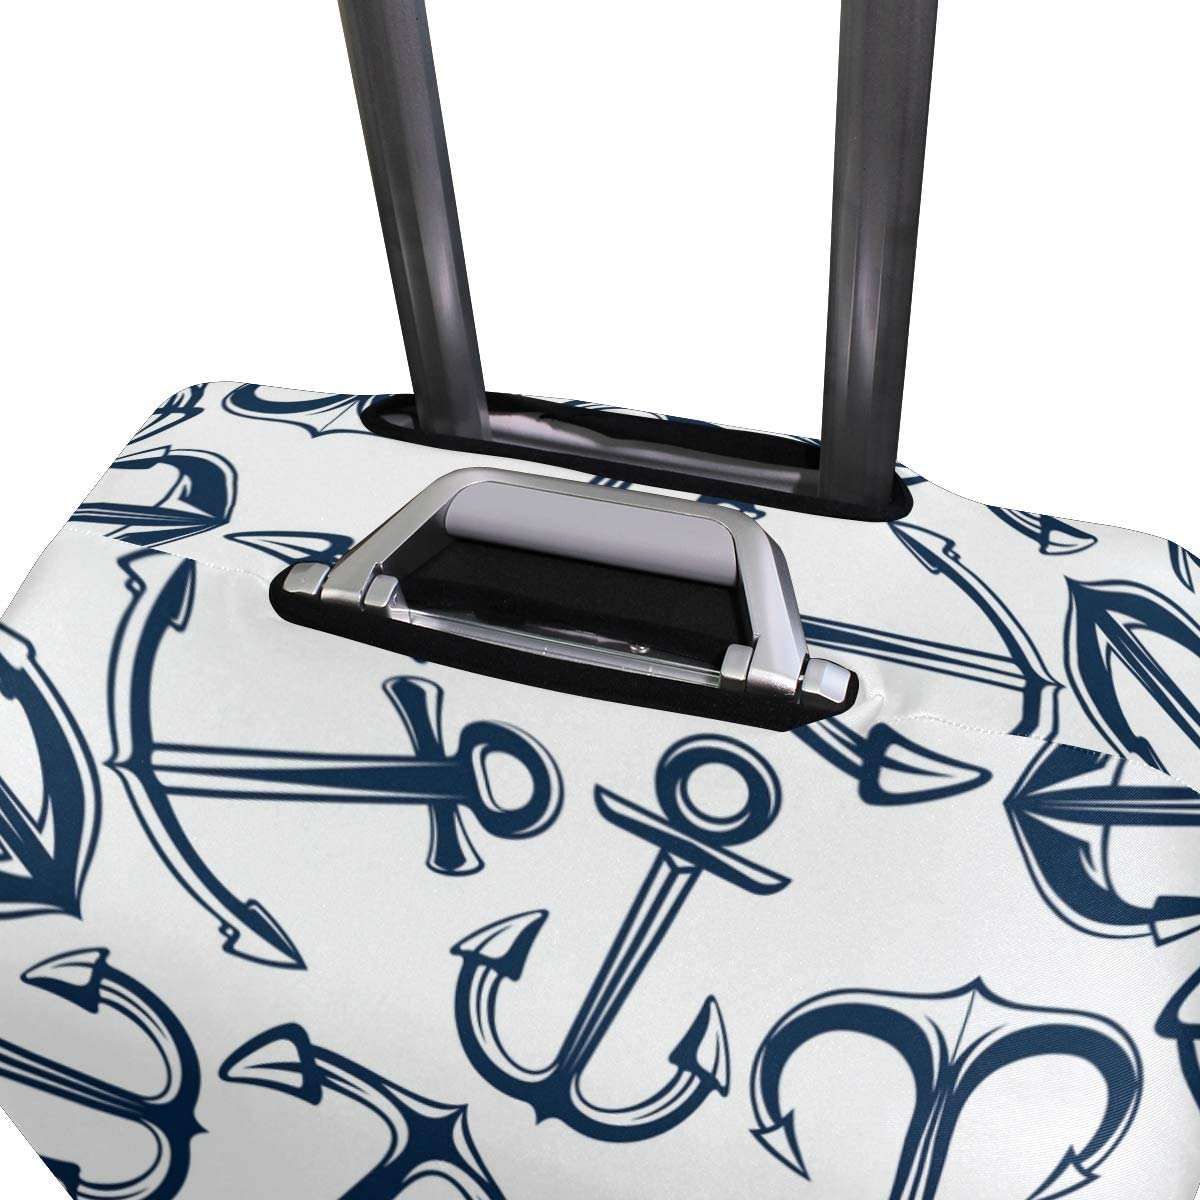 GIOVANIOR Retro Marine Anchors Luggage Cover Suitcase Protector Carry On Covers